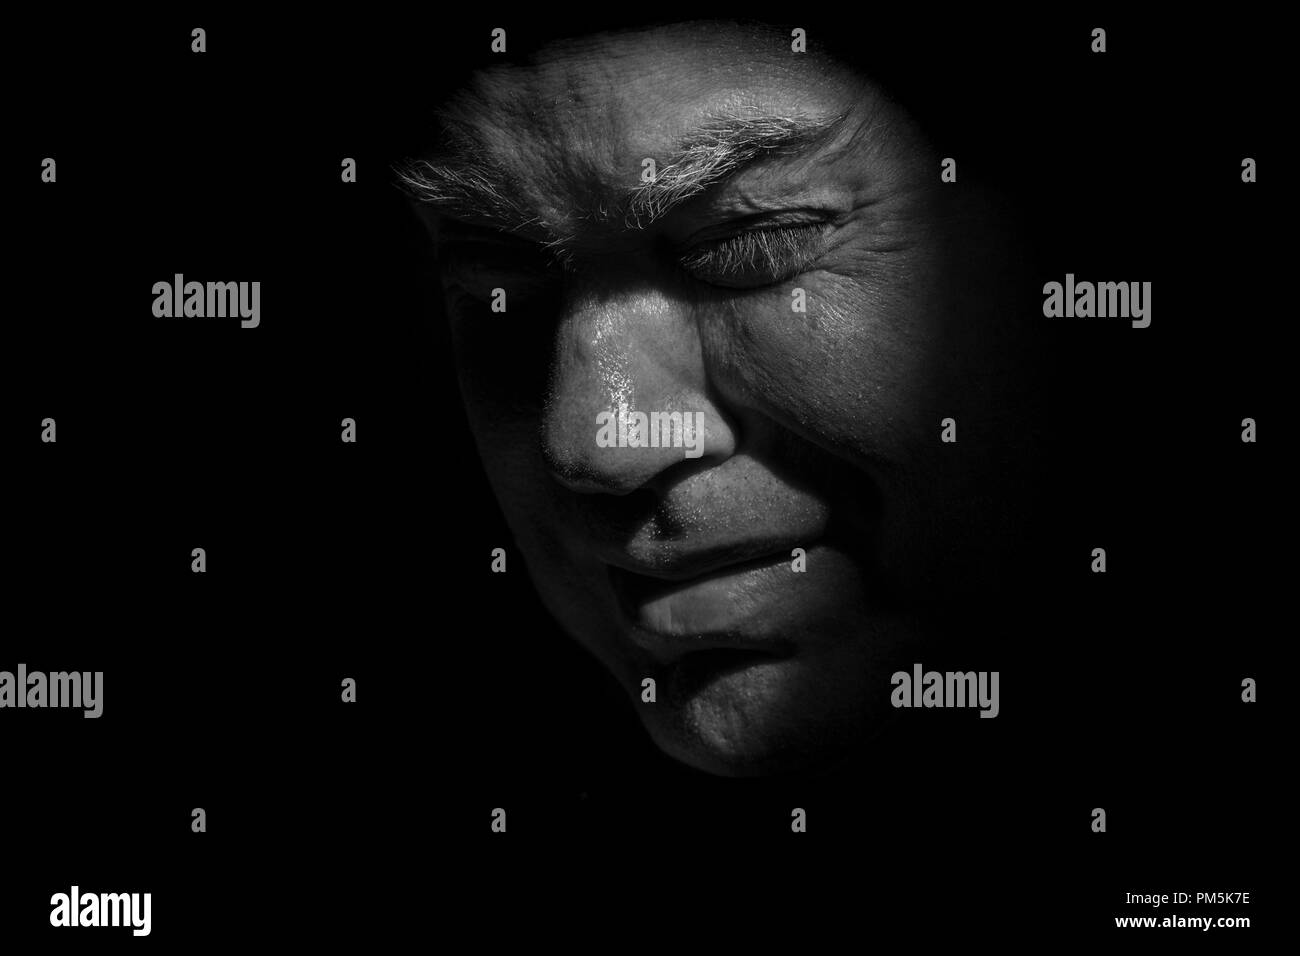 Model released closeup of man's face, looking desperate, distressed, in anguish & despair while squinting in bright moody lights. Concept. - Stock Image